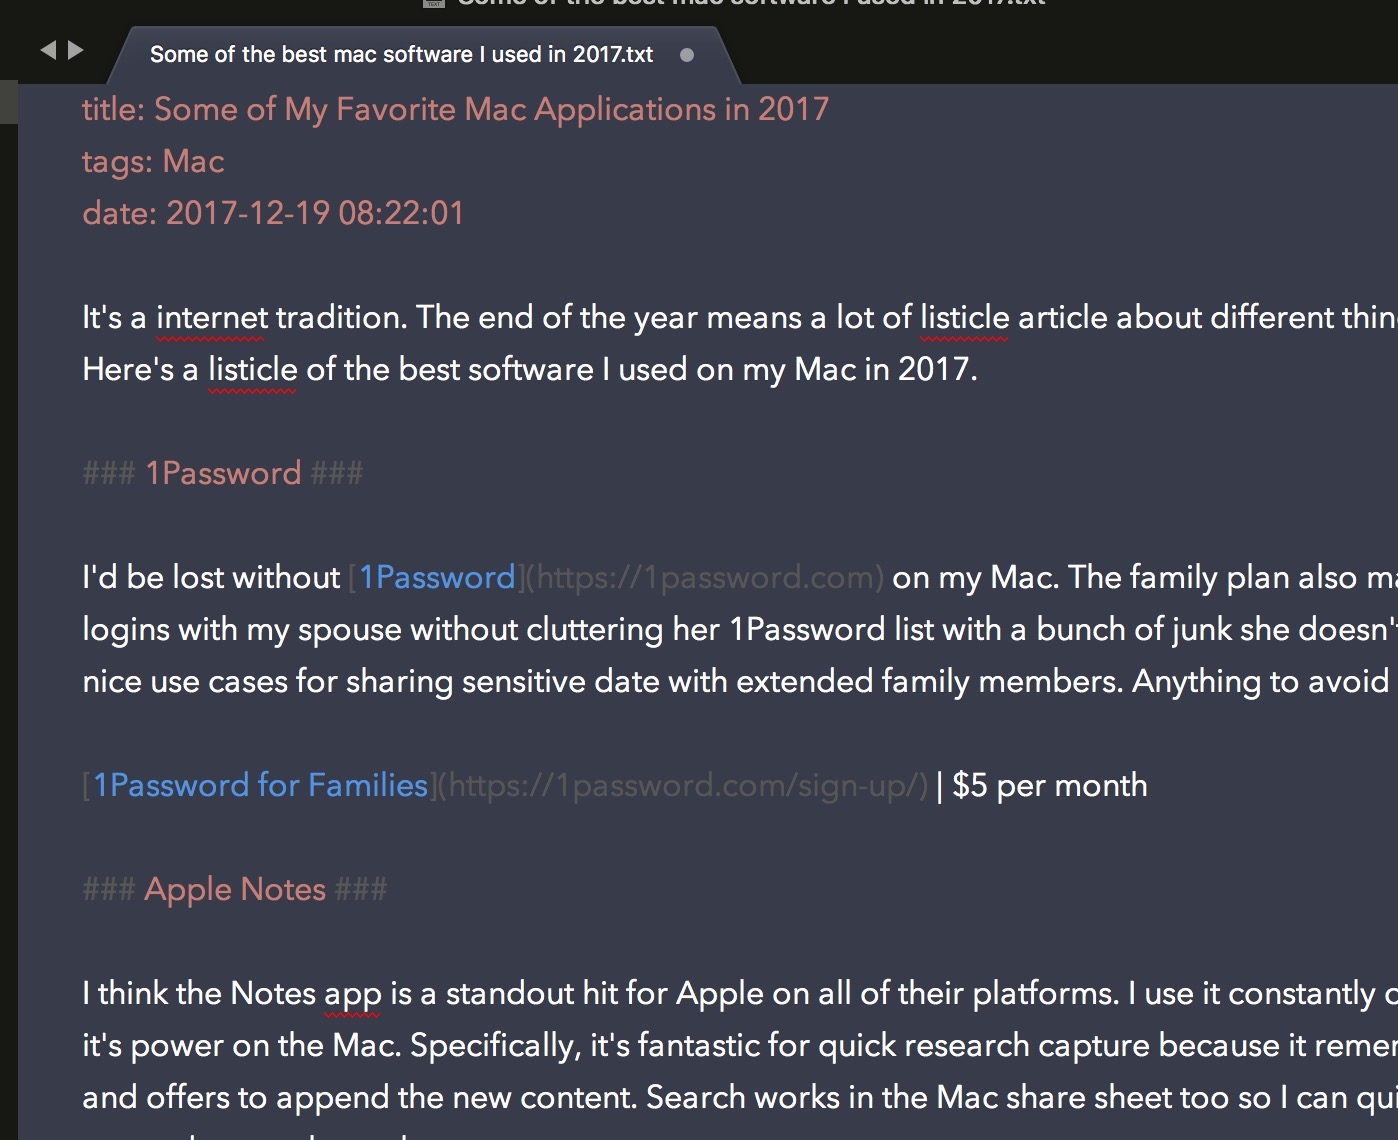 Some of My Favorite Mac Applications in 2017